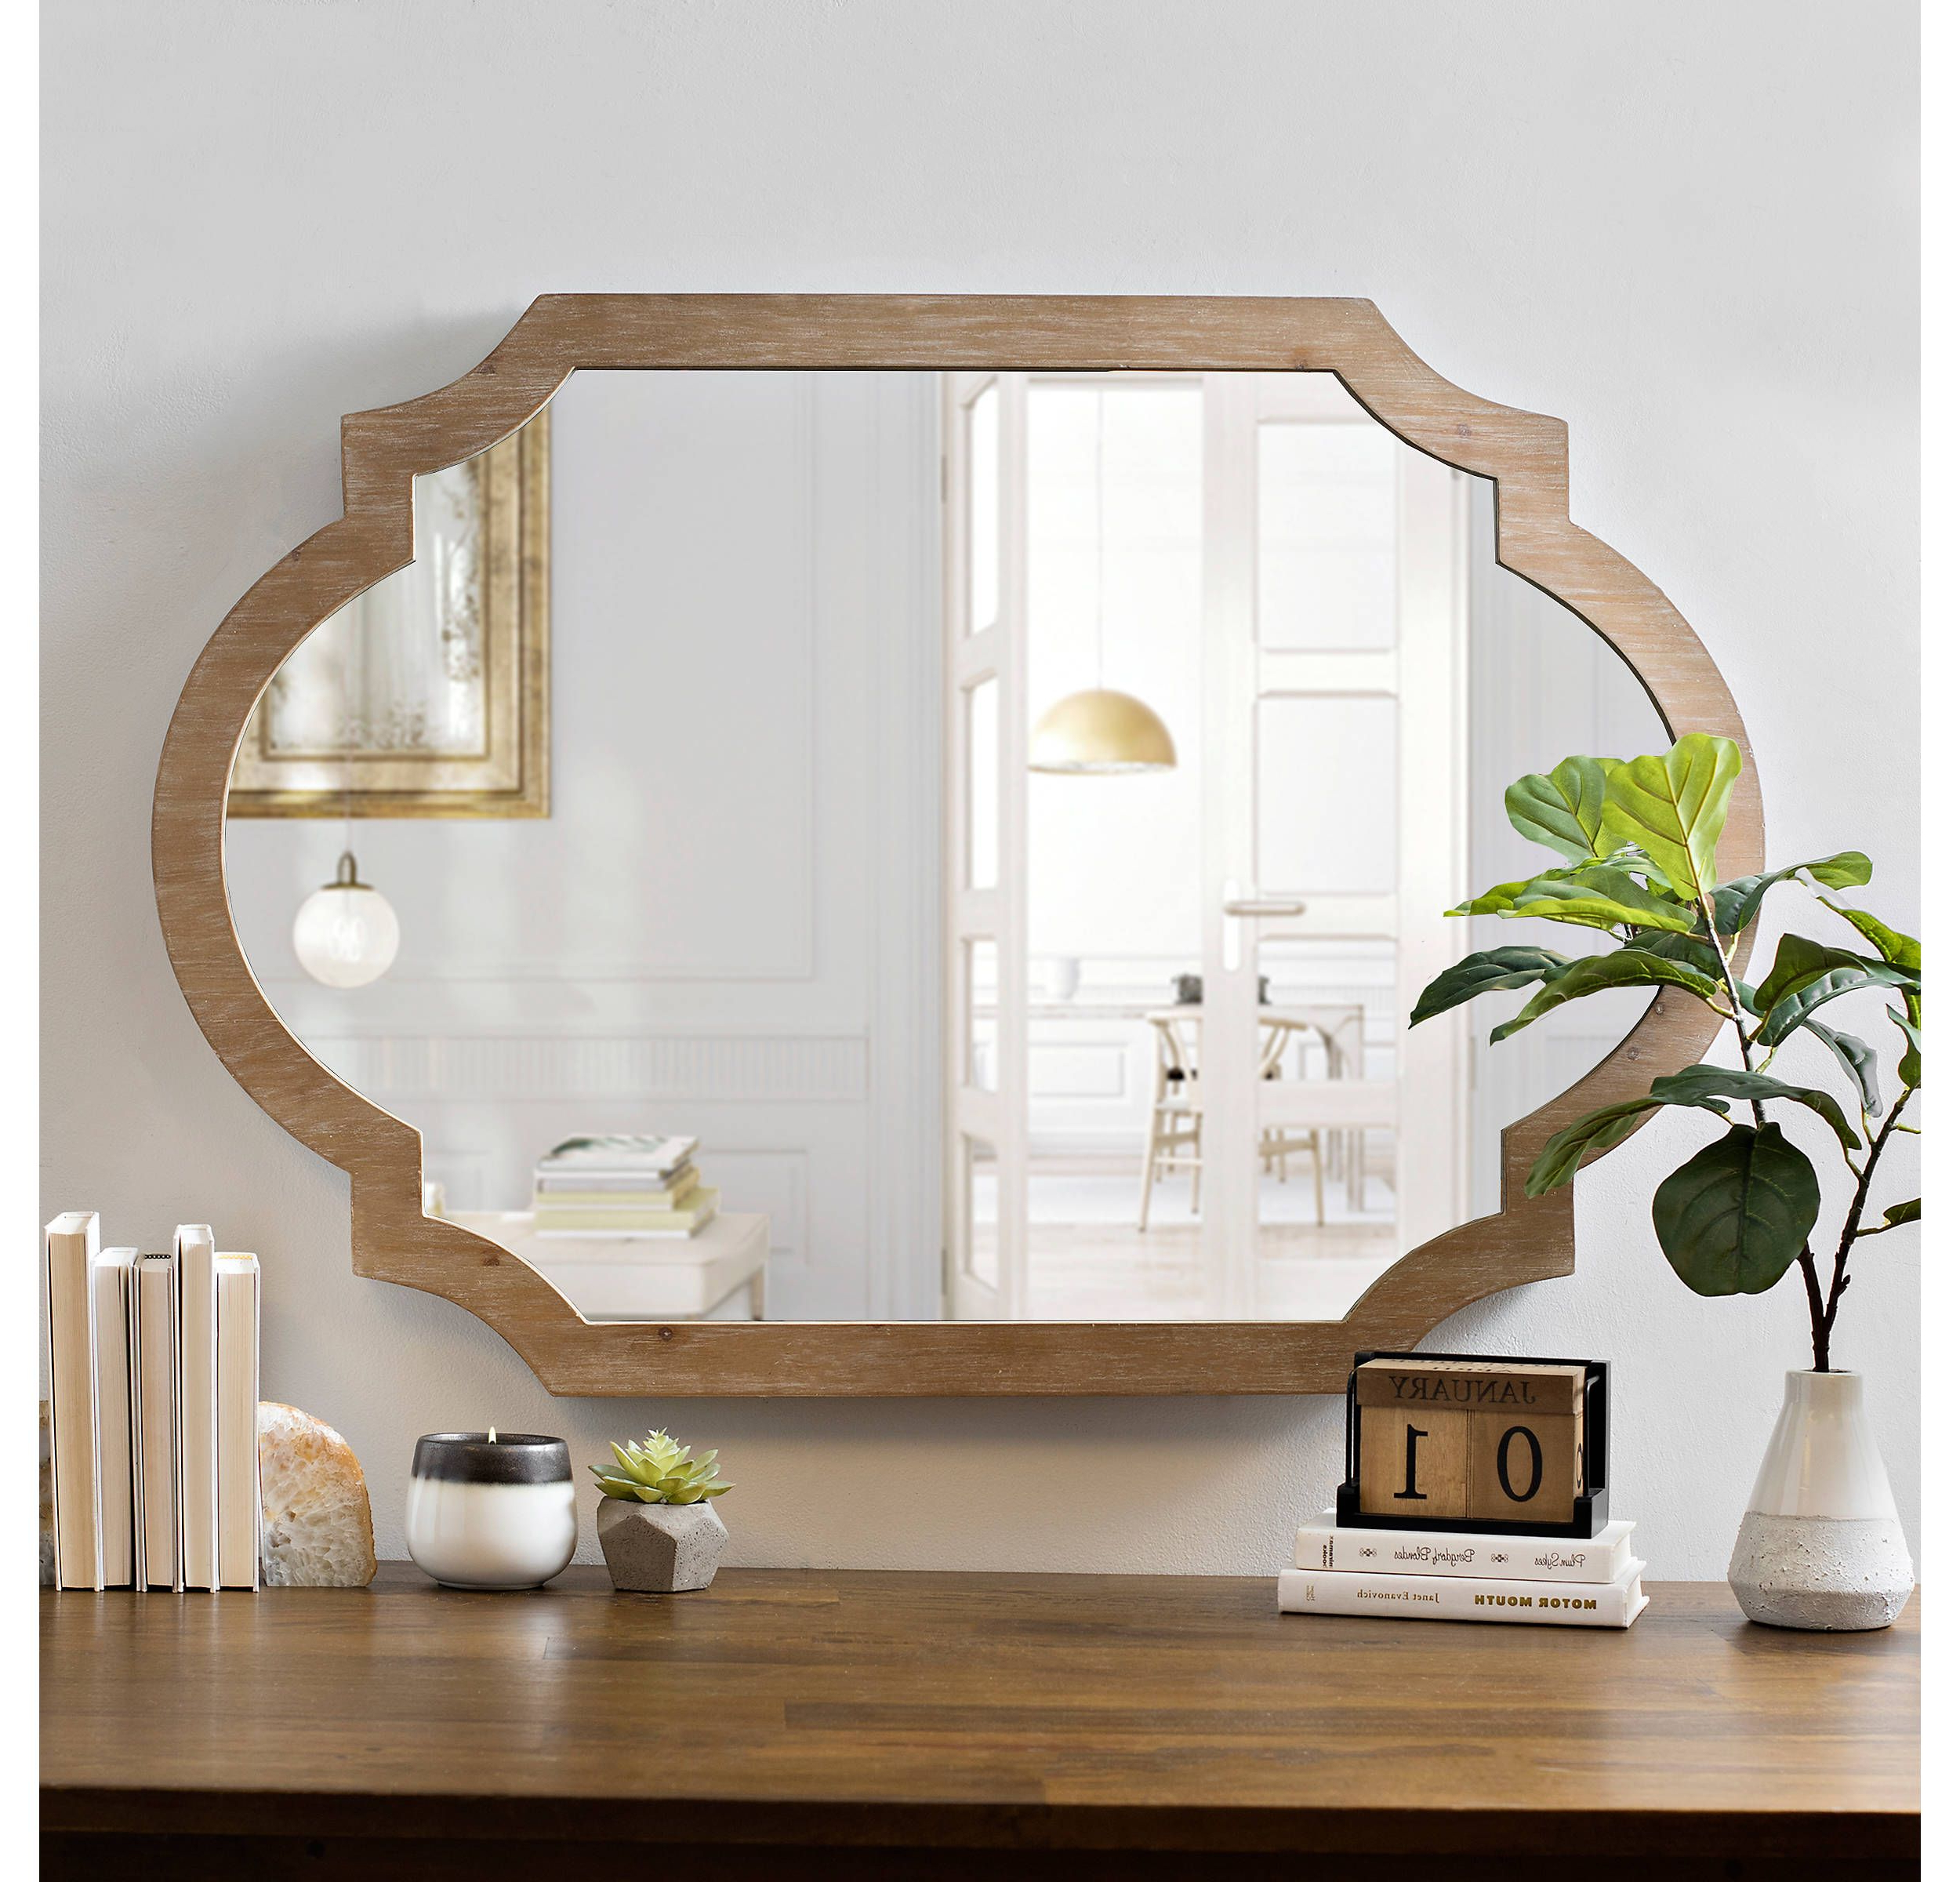 Loftis Modern & Contemporary Accent Wall Mirrors Pertaining To Widely Used Product Details Natural Wood Scalloped Mirror In  (View 13 of 20)